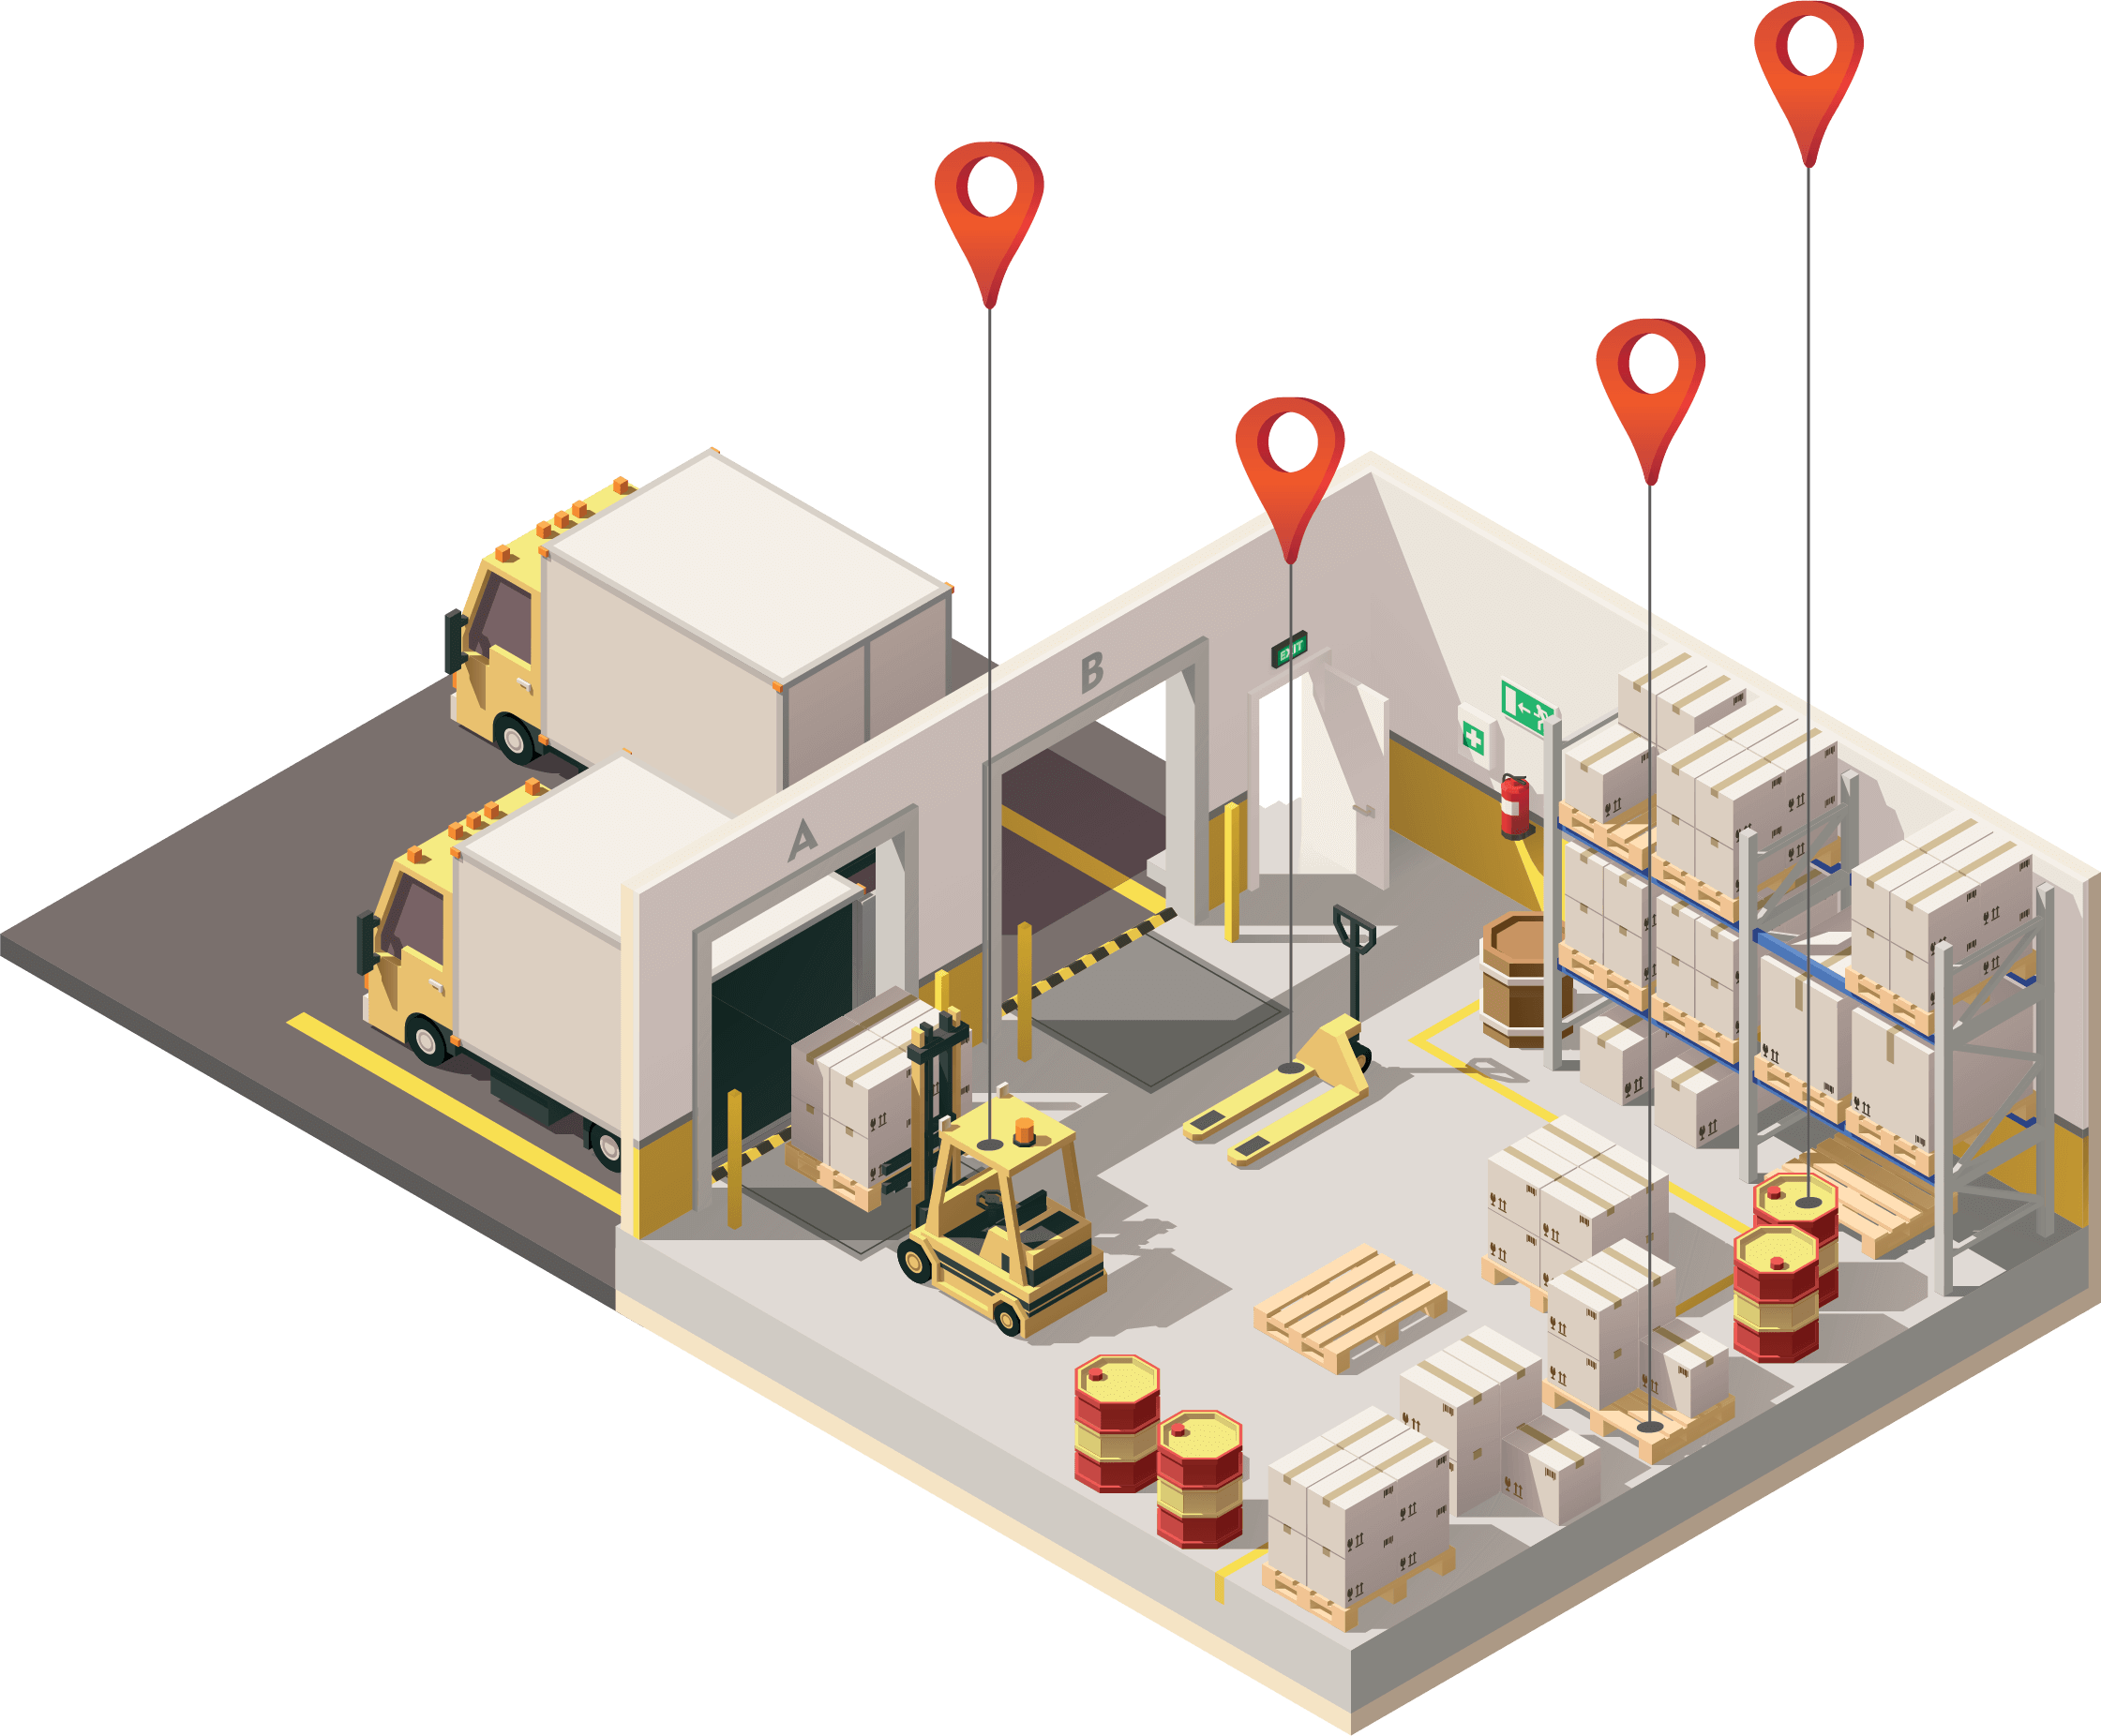 warehouse with RFID asset tracking system visualization